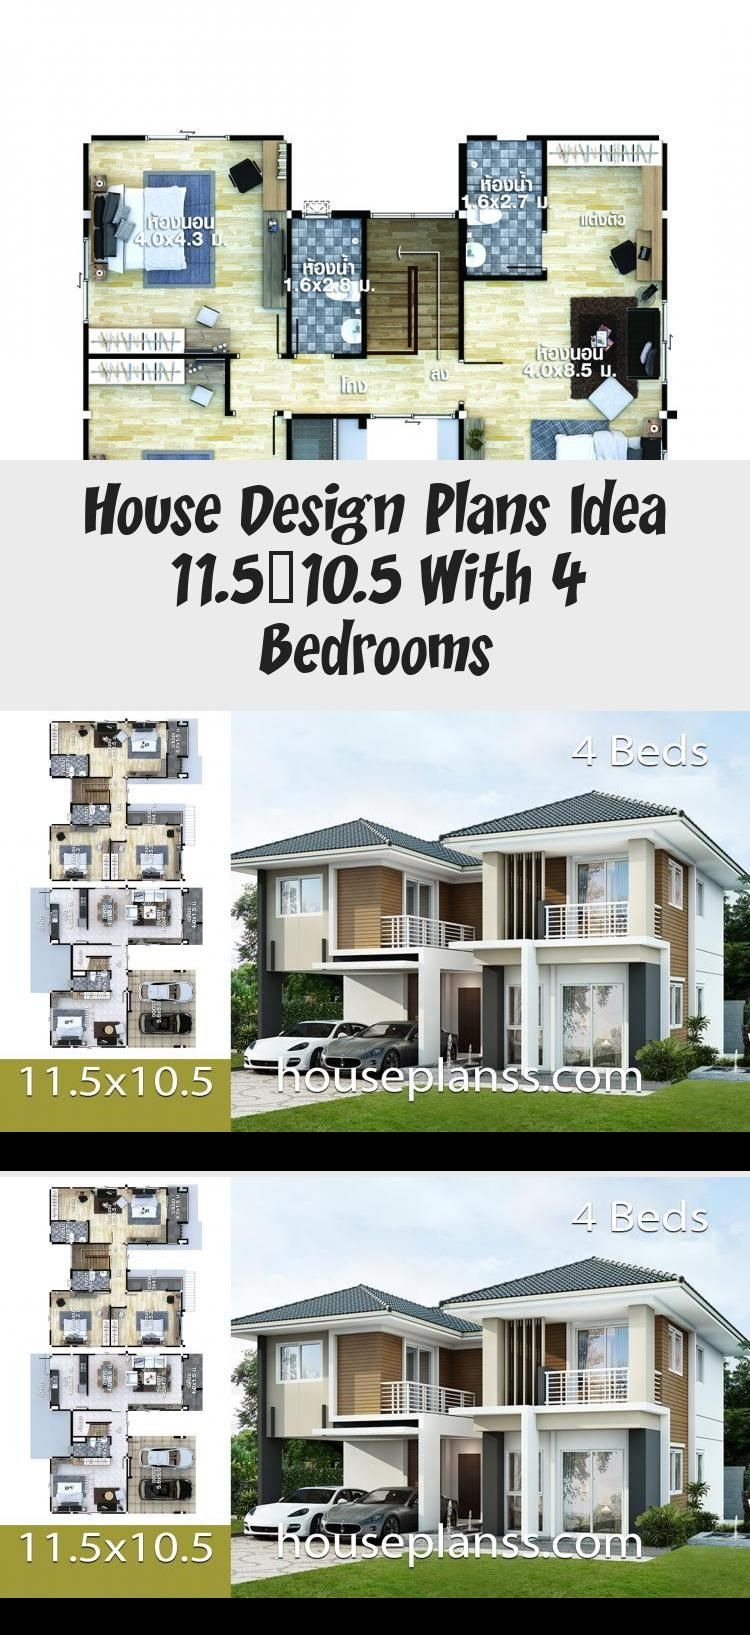 House Design Plans Idea 11 5 10 5 With 4 Bedrooms In 2020 Home Design Plans House Design Floor Plan 4 Bedroom